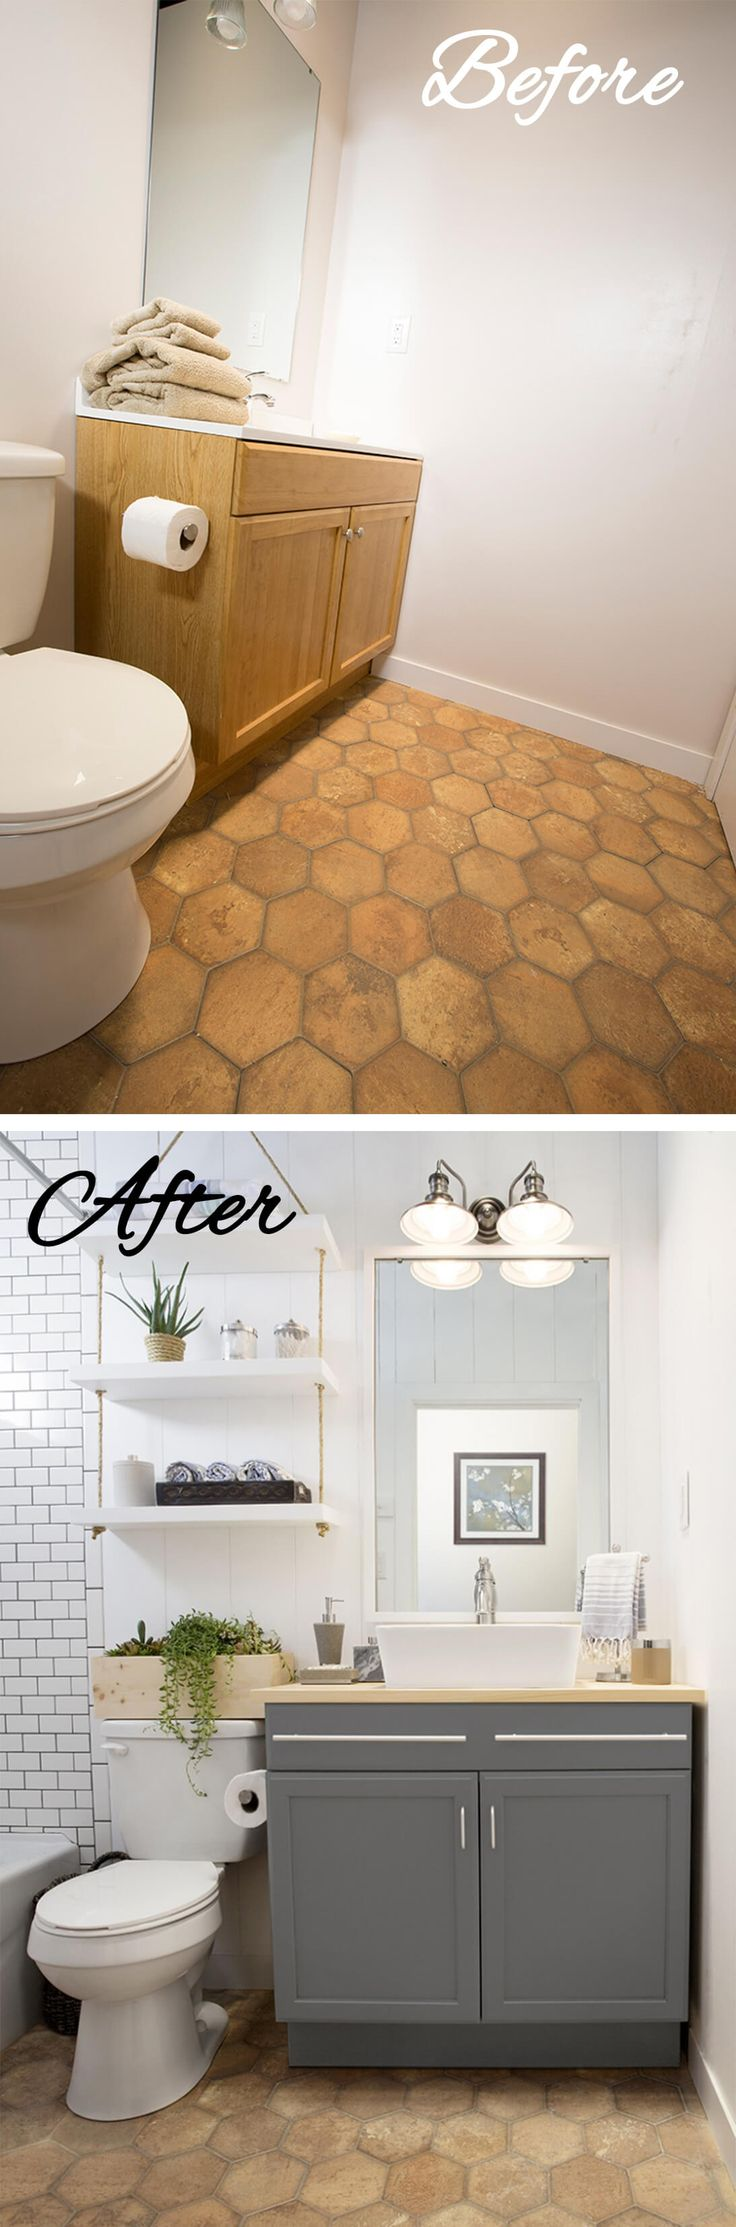 28 Before and After Budget Friendly Bathroom